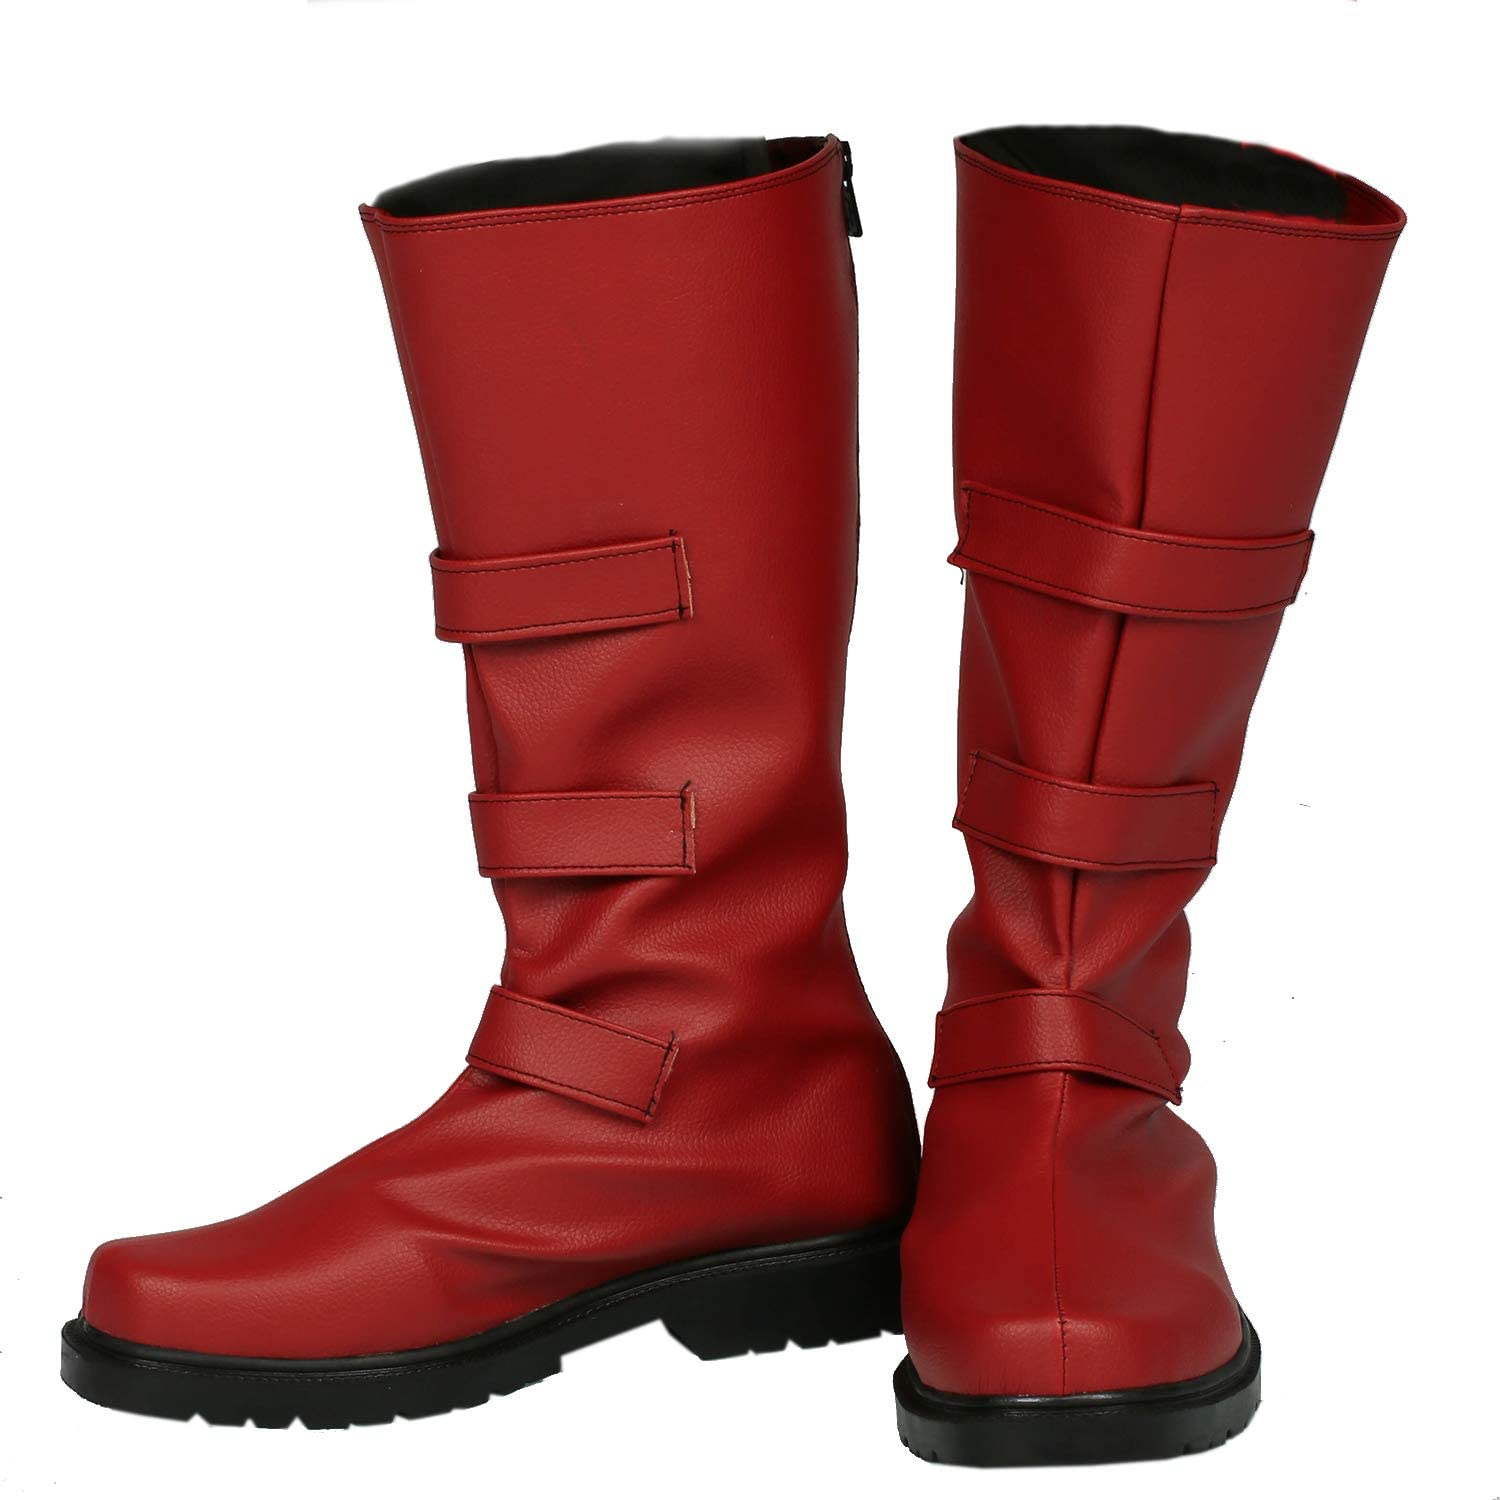 Mens Matt Cosplay Boots Shoes Costume Accessories for Halloween